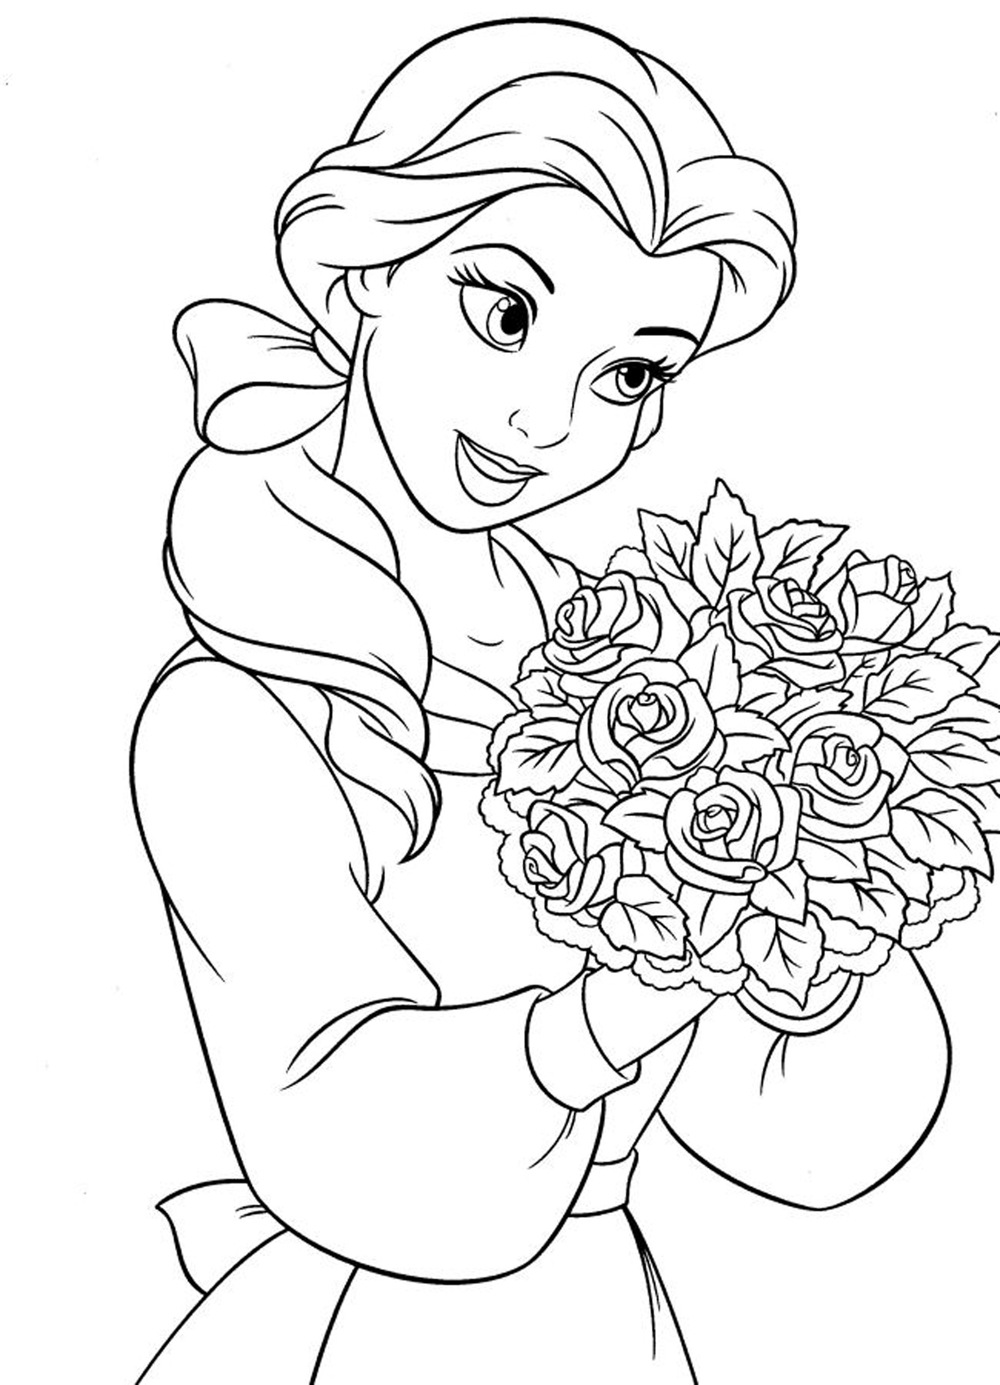 girls free coloring pages - photo#20